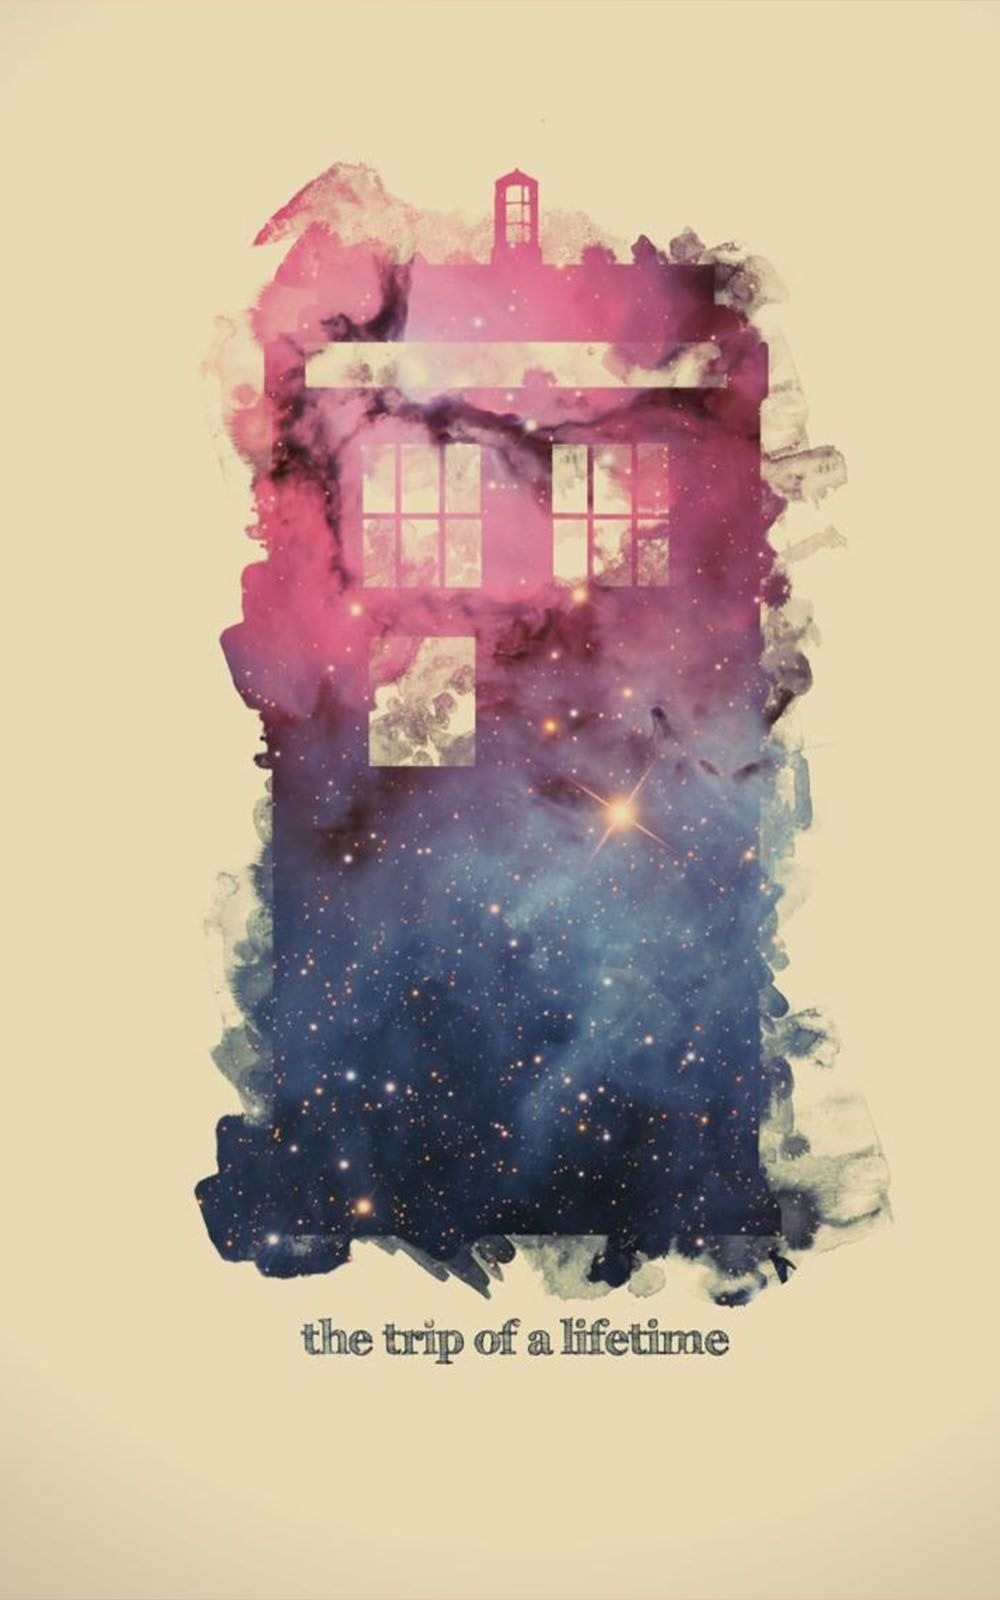 1000x1600 Download Dr Who The Trip of a Lifetime Free Pure 4K Ultra HD ...